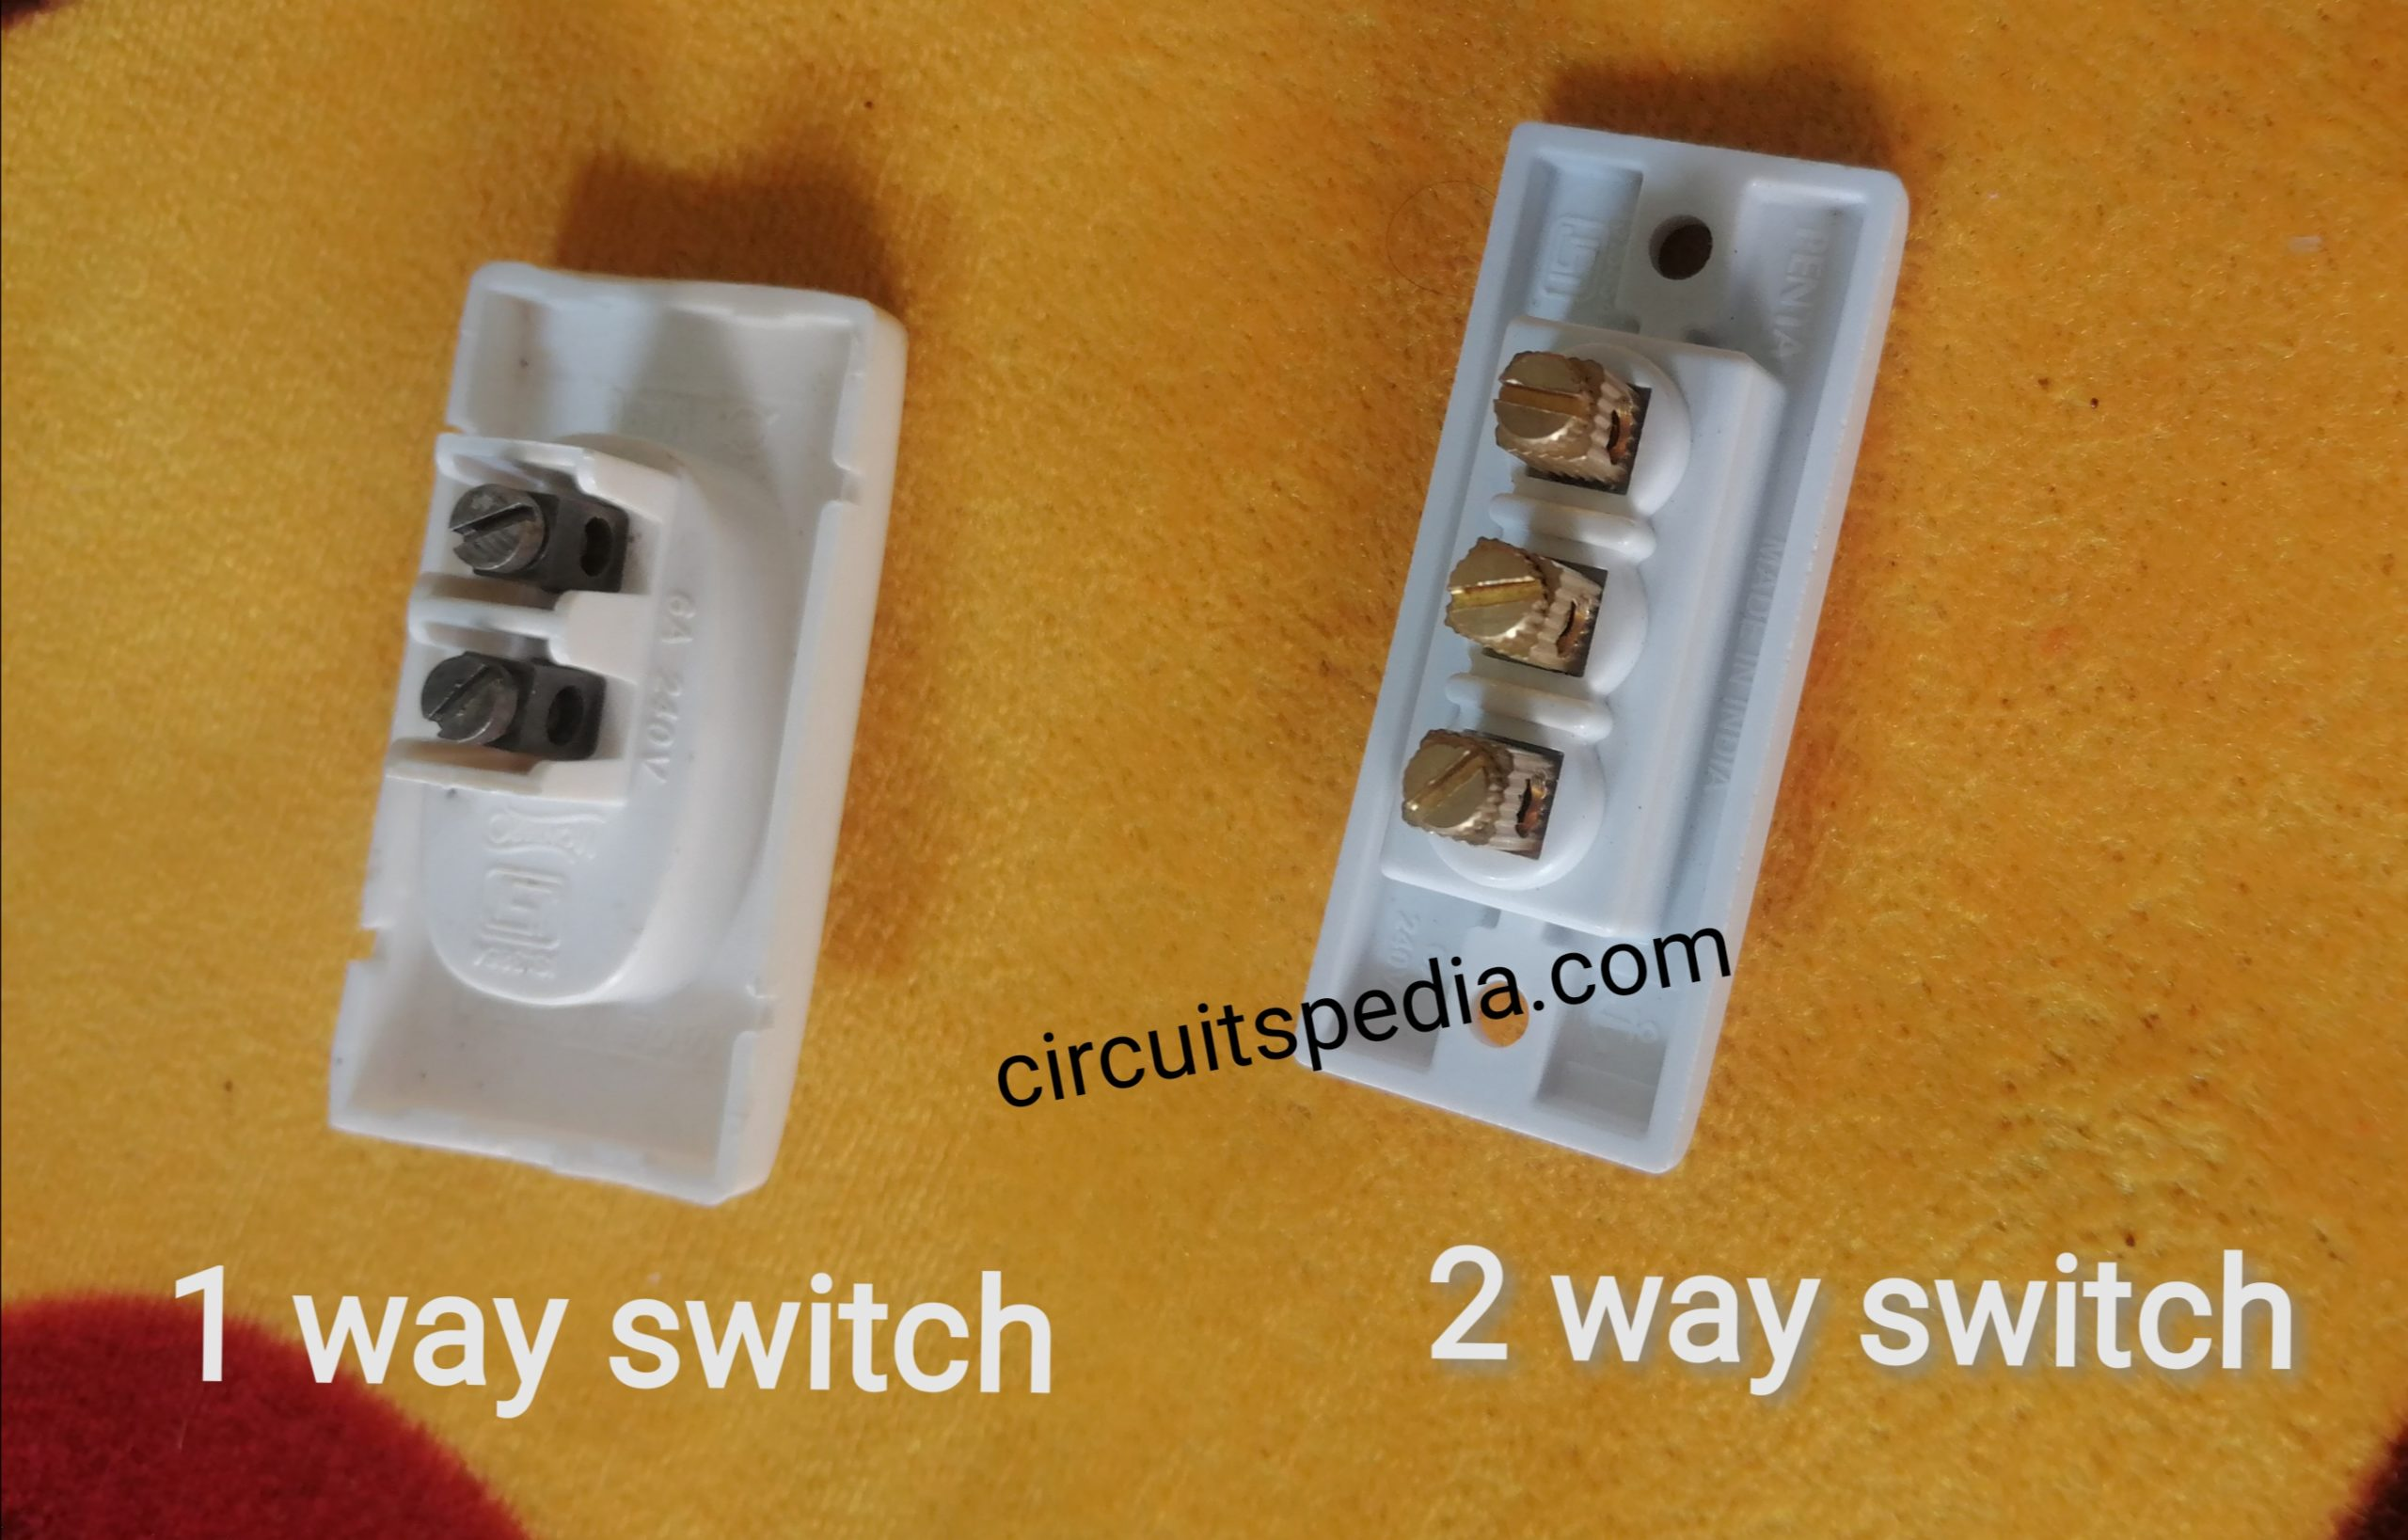 One way switch and two way switch